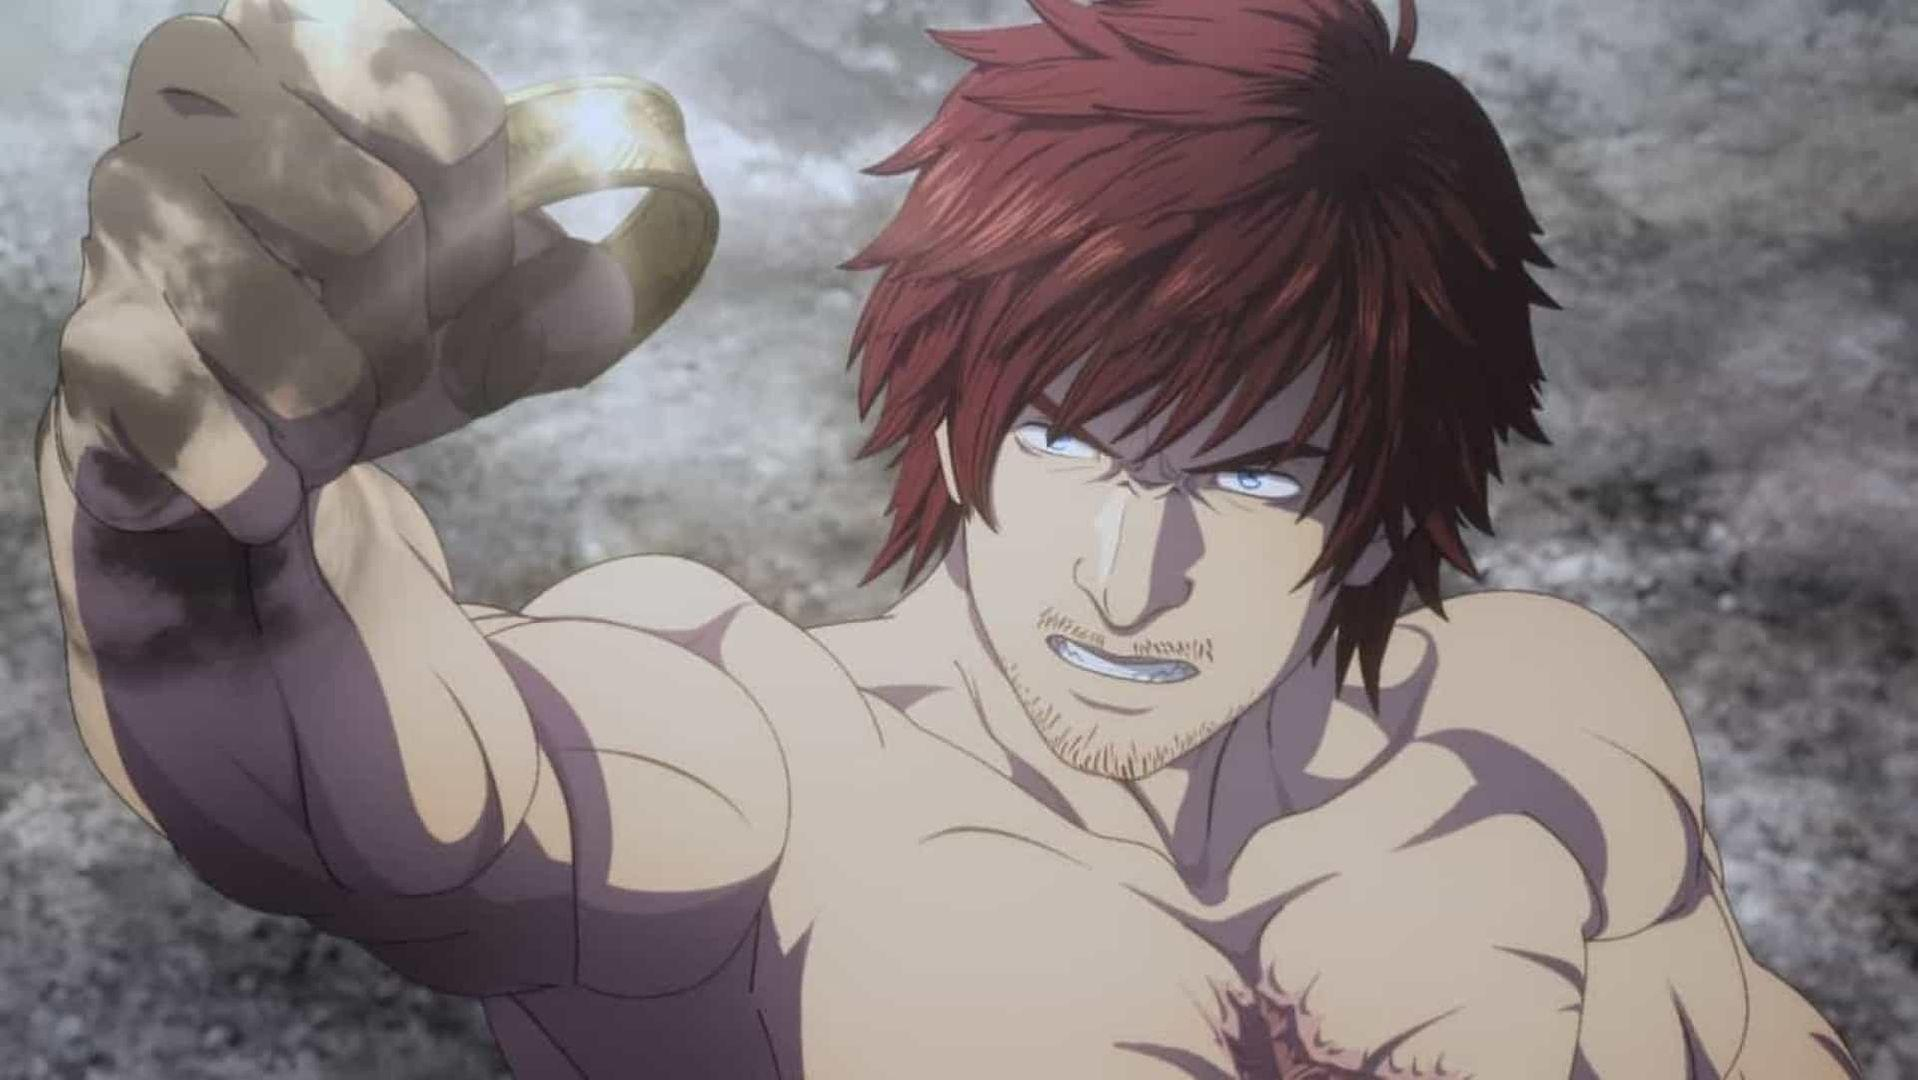 A Dragon's Dogma anime is coming to Netflix this September